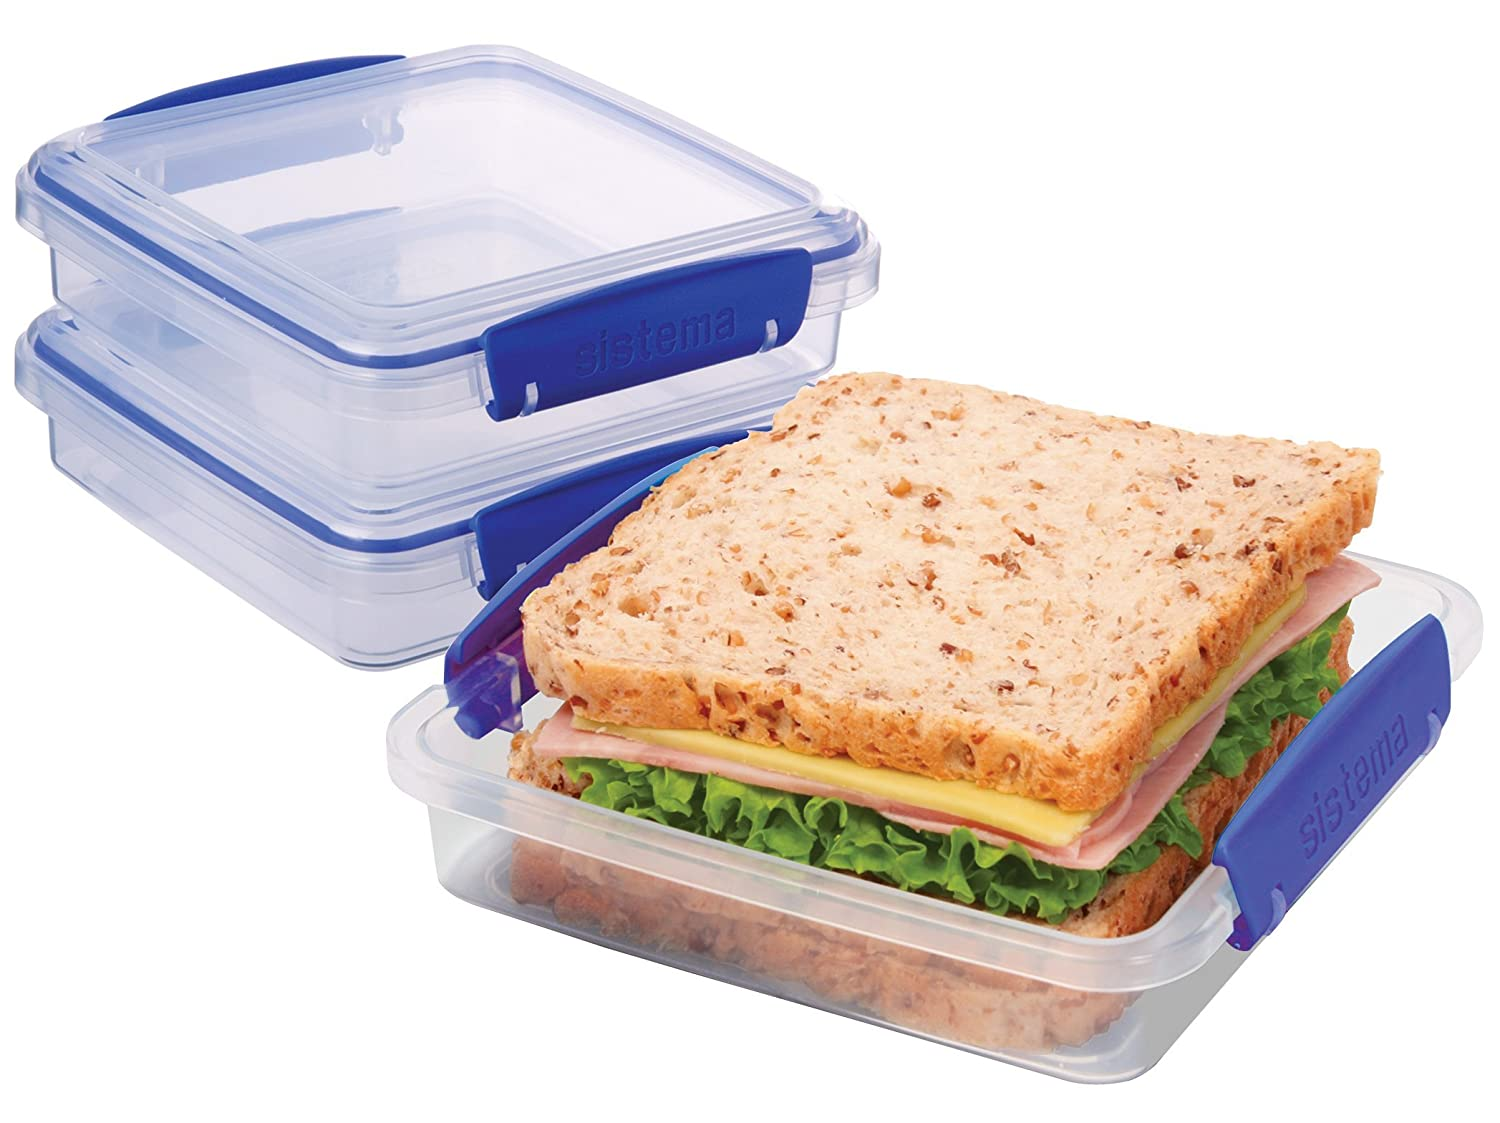 This is an image of a sandwich in a box